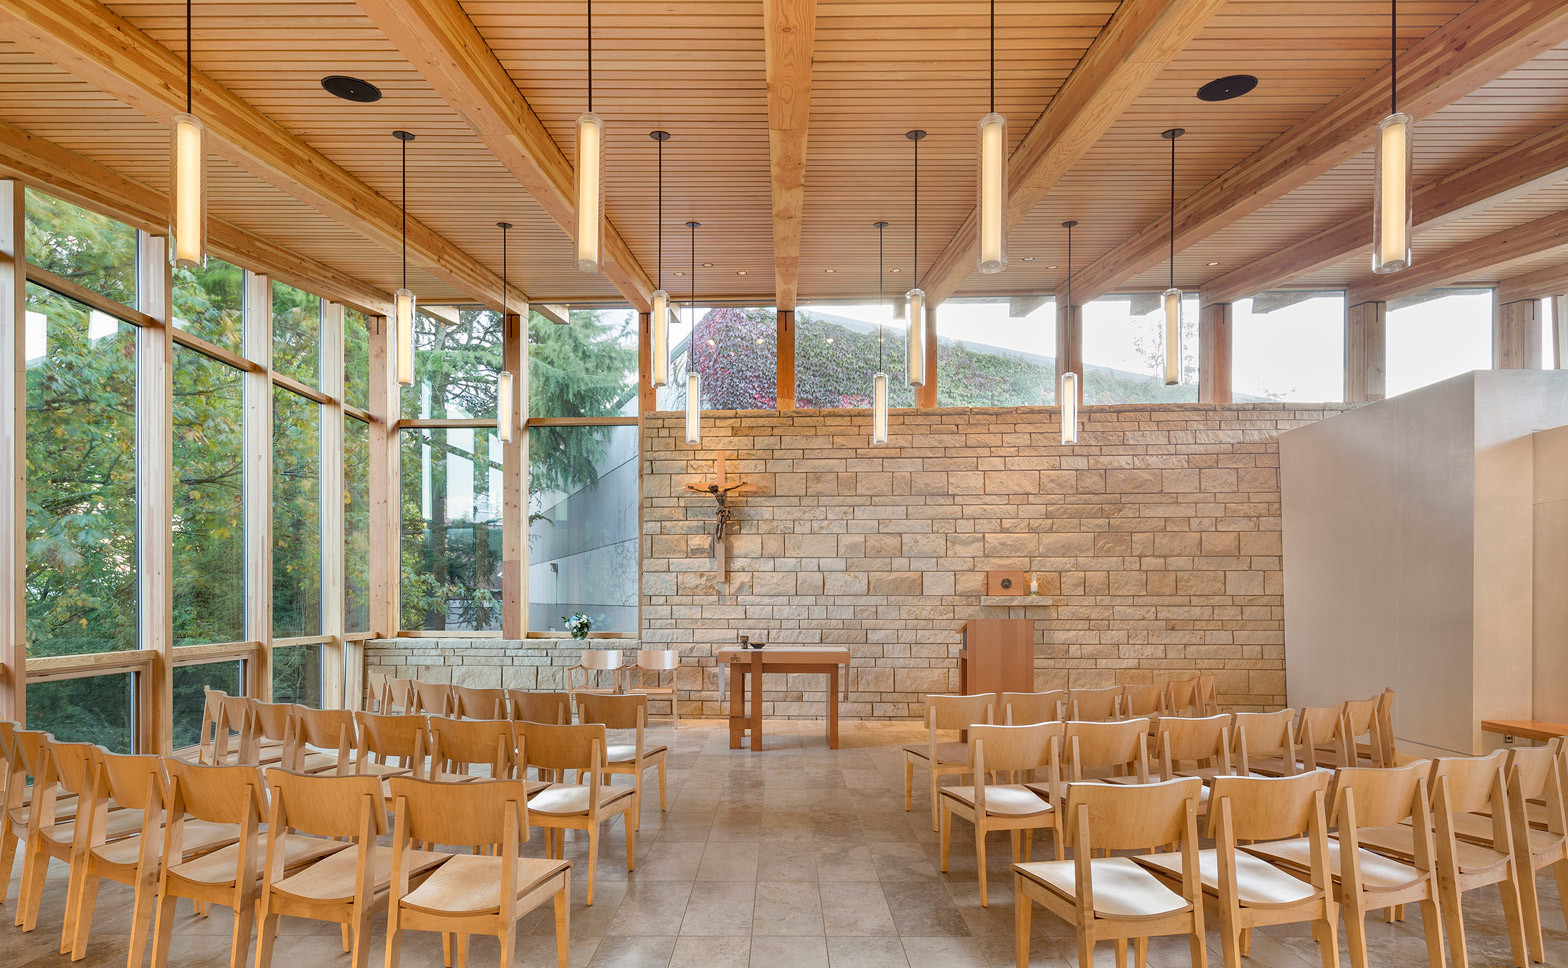 our-lady-of-montserrat-chapel-hennebery-eddy-architects-capitol-hill-jesuit-school-seattle-usa_dezeen_1568_1